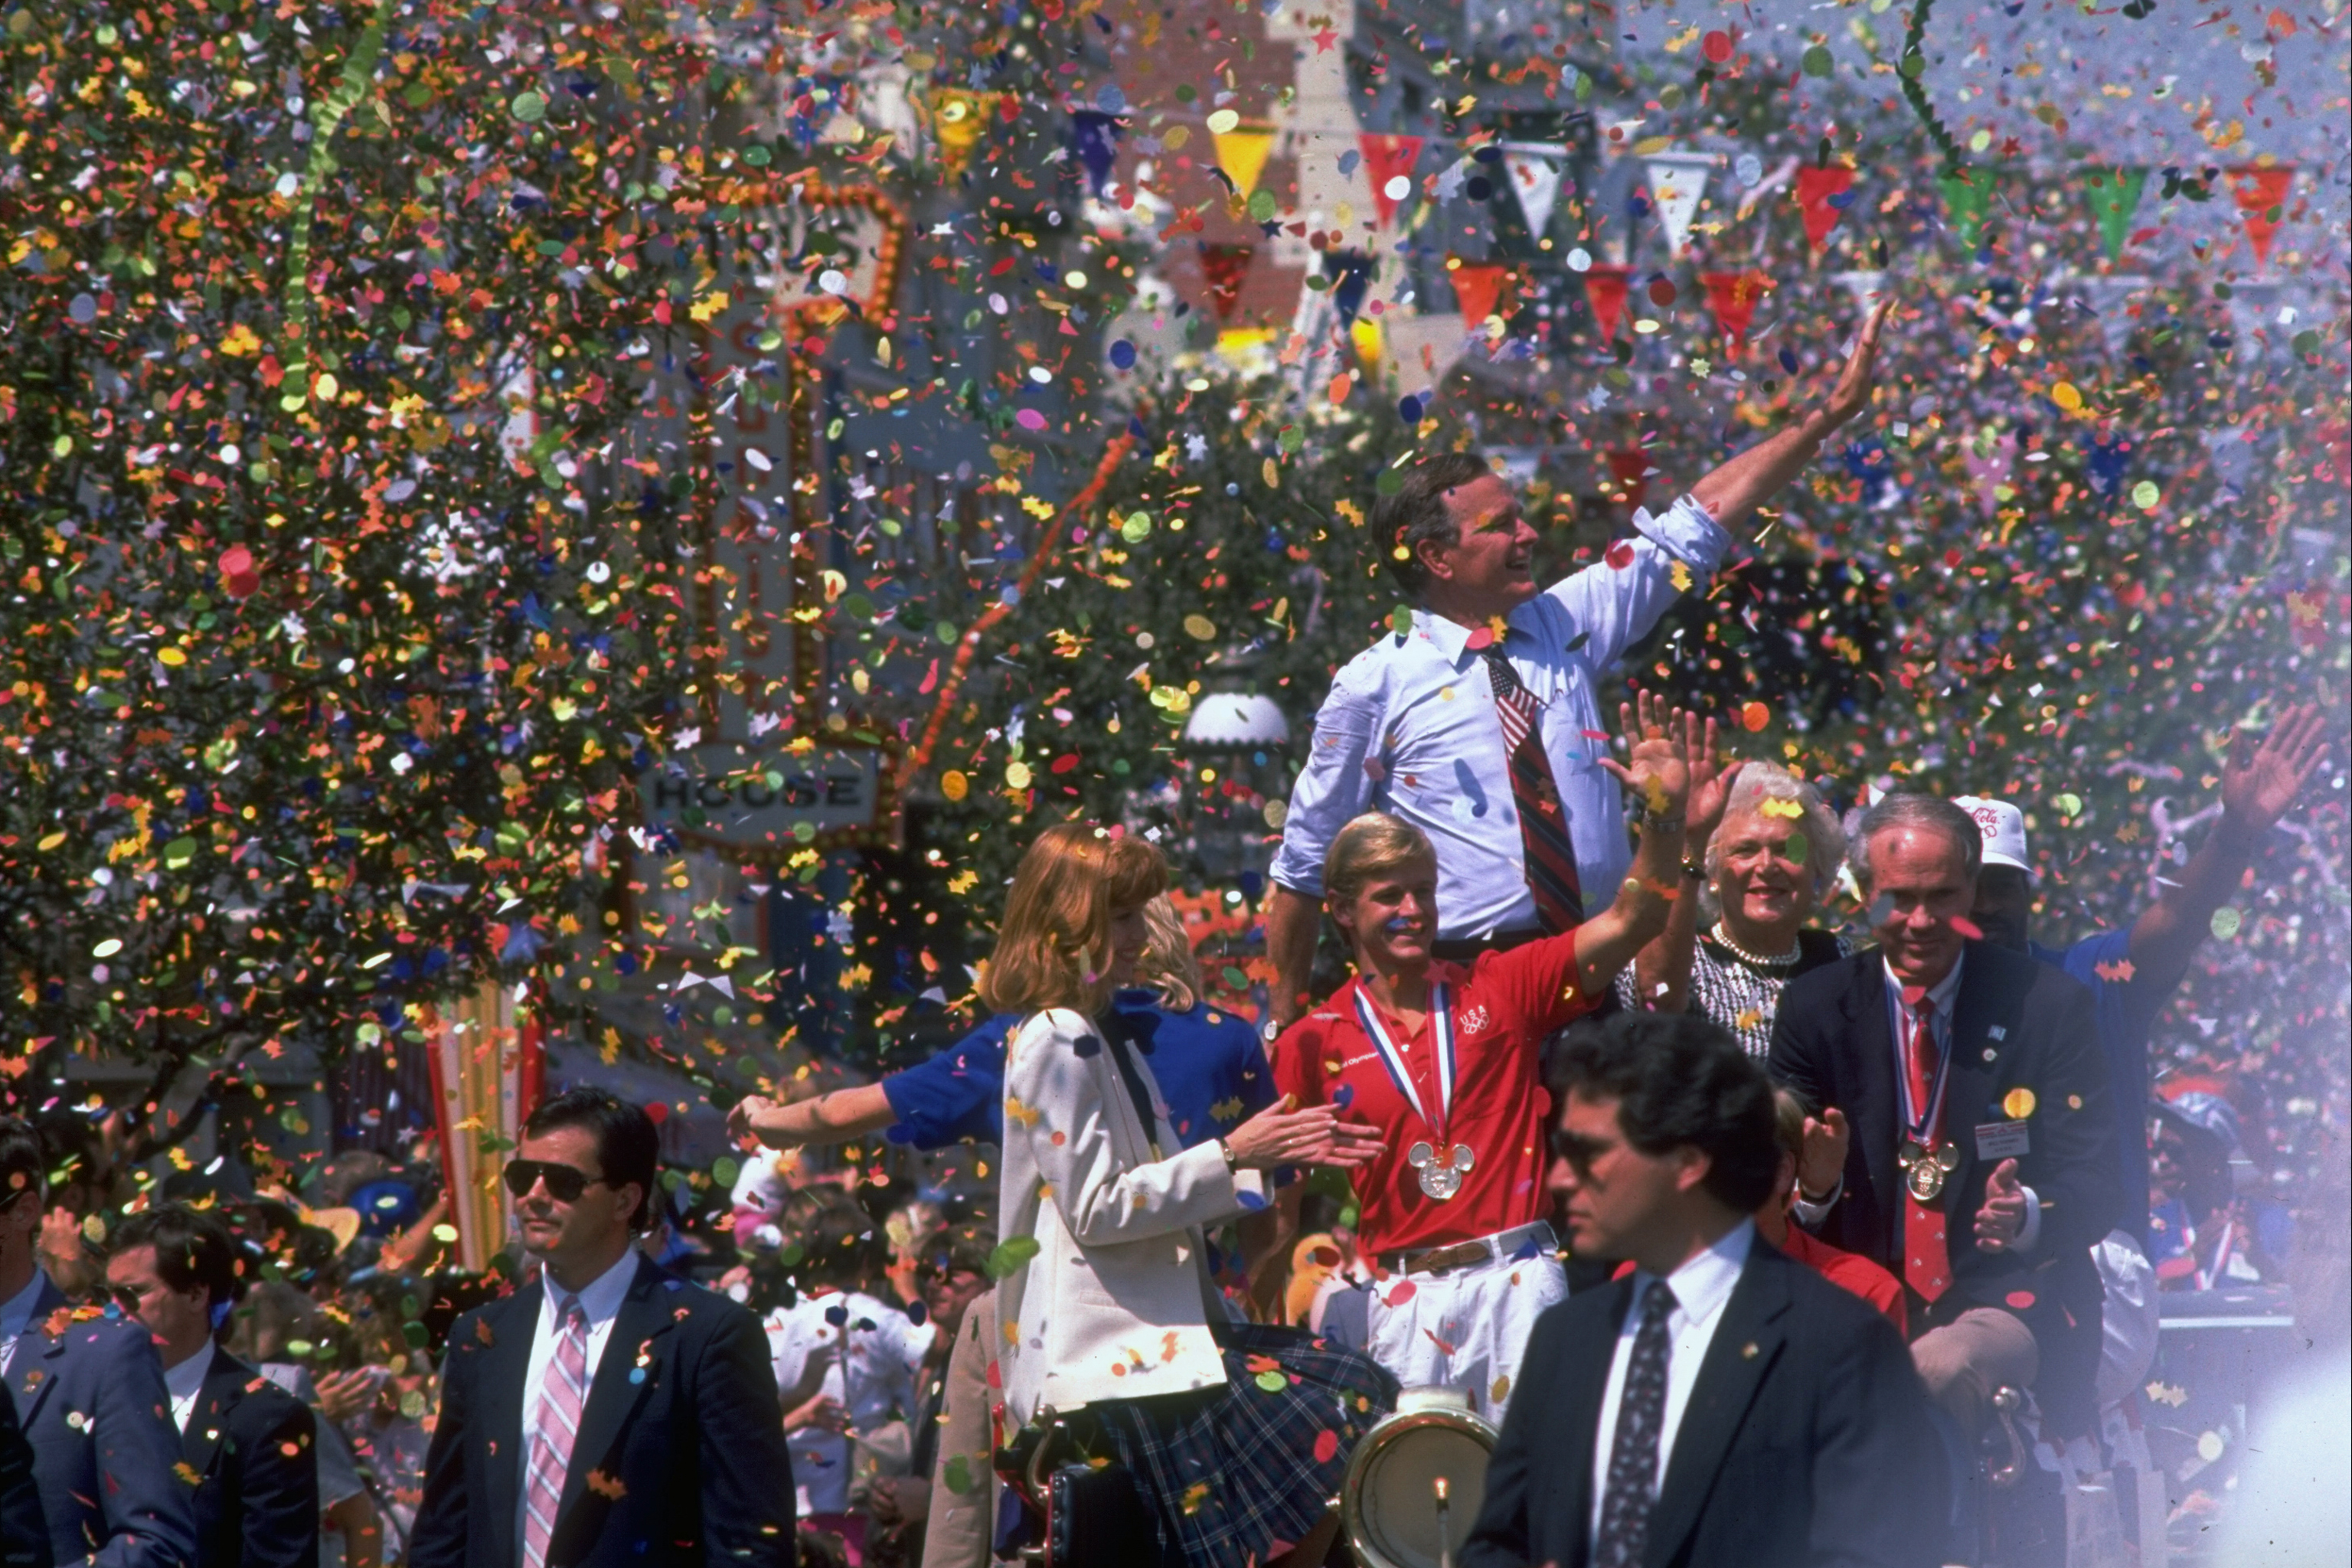 Republican presidential candidate George H.W. Bush waving above a crowd amid shower of parade confetti, with wife Barbara by his side  at a send-off gala for the US Olympic team.